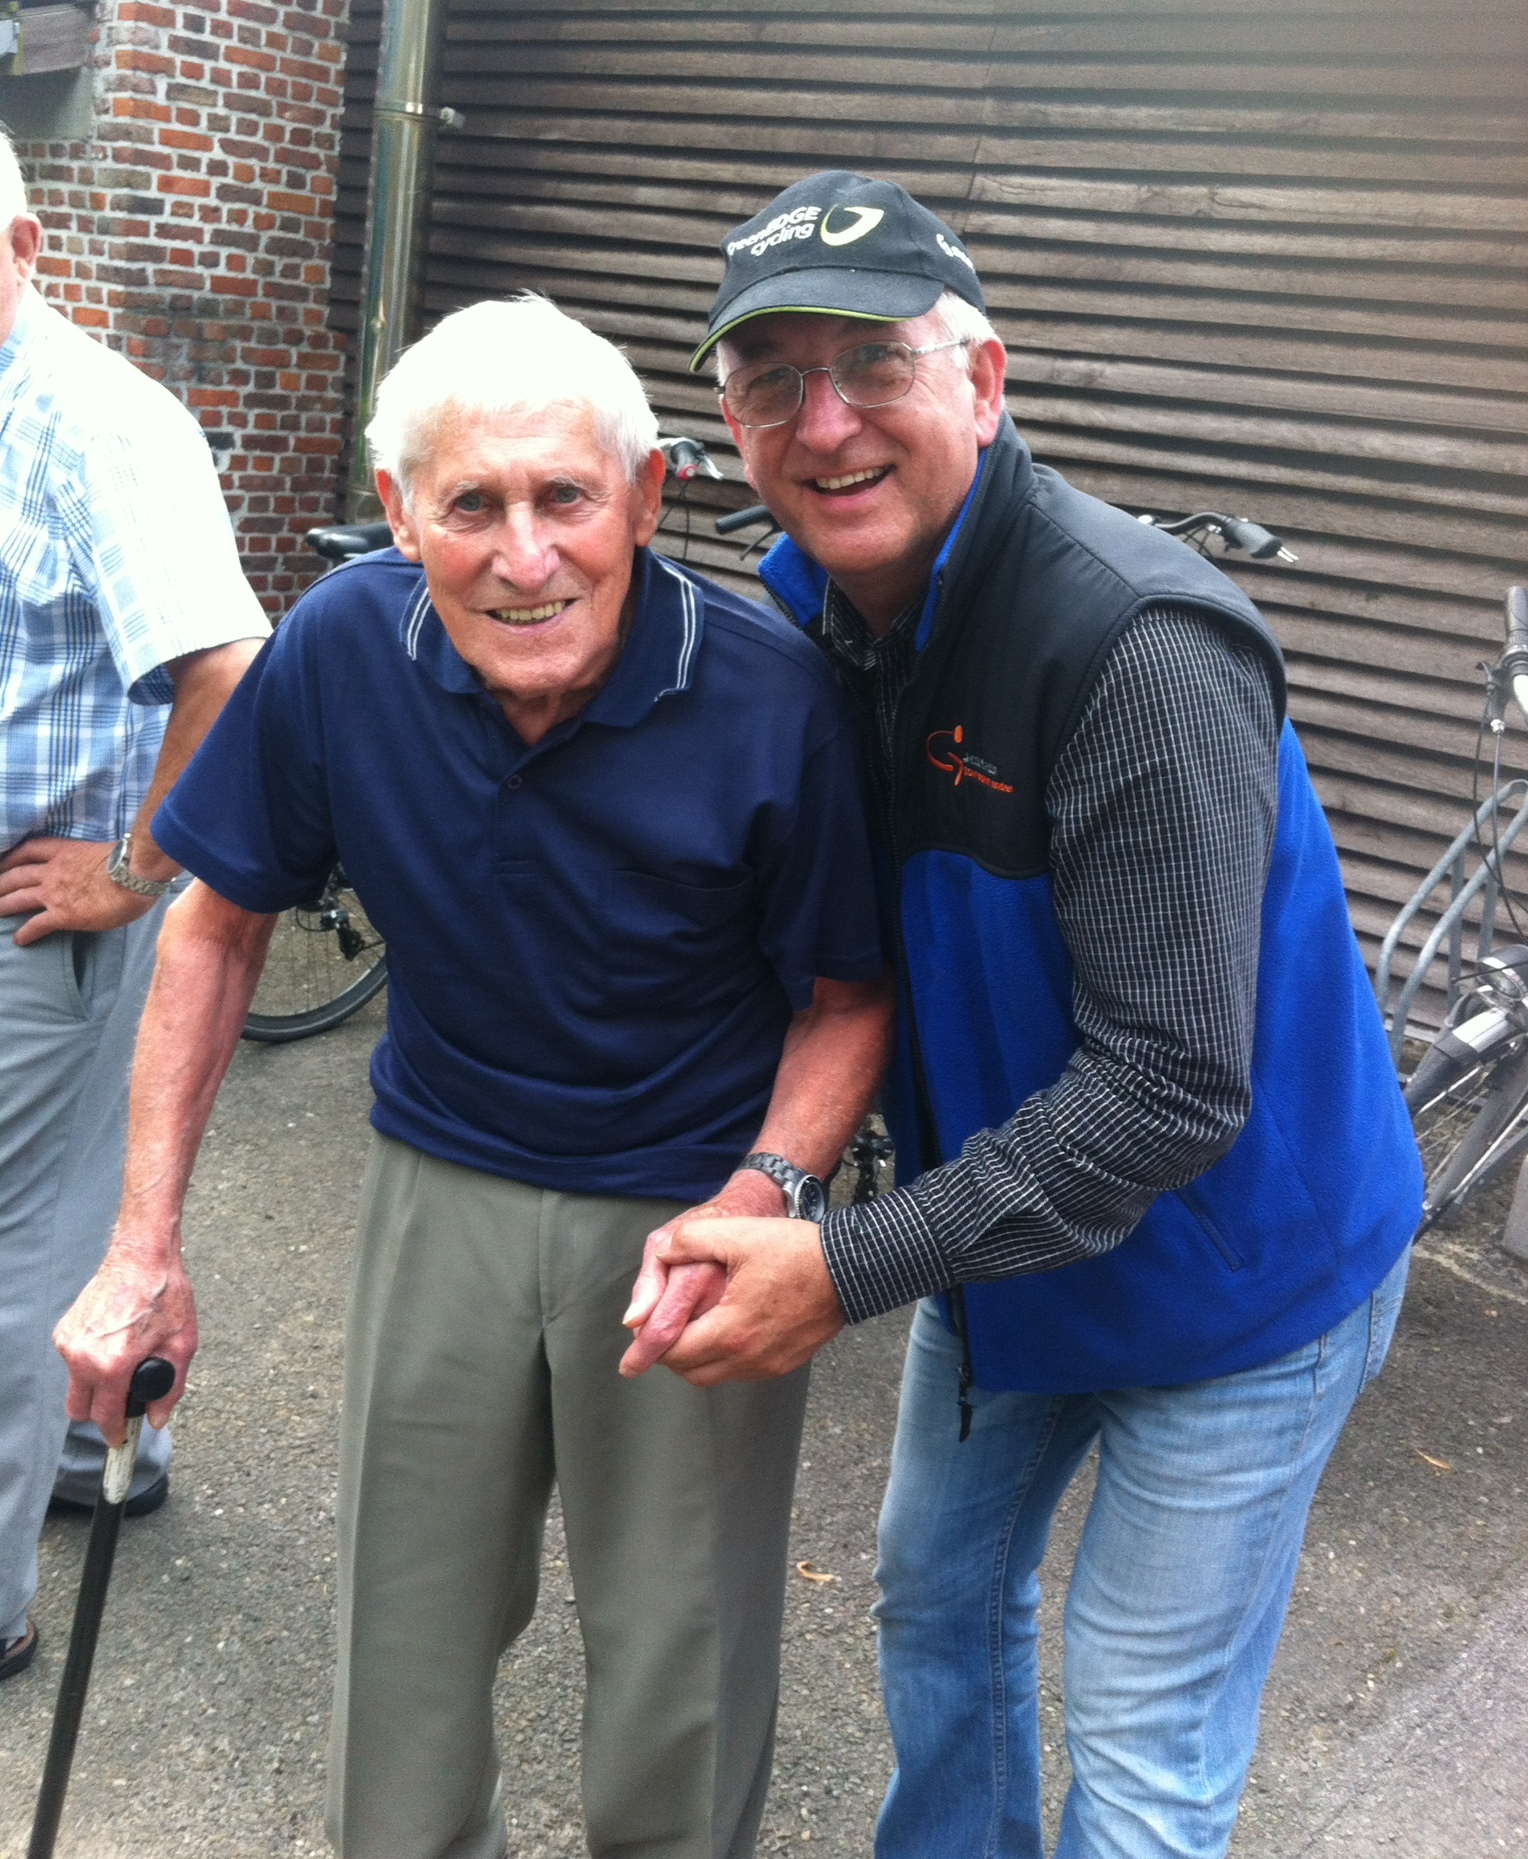 Frans Ver Hulst celebrates turning 90 in Antwerp. The Ver Hulst family have generously supported several BiciSport riders over the years to race in Belgium.